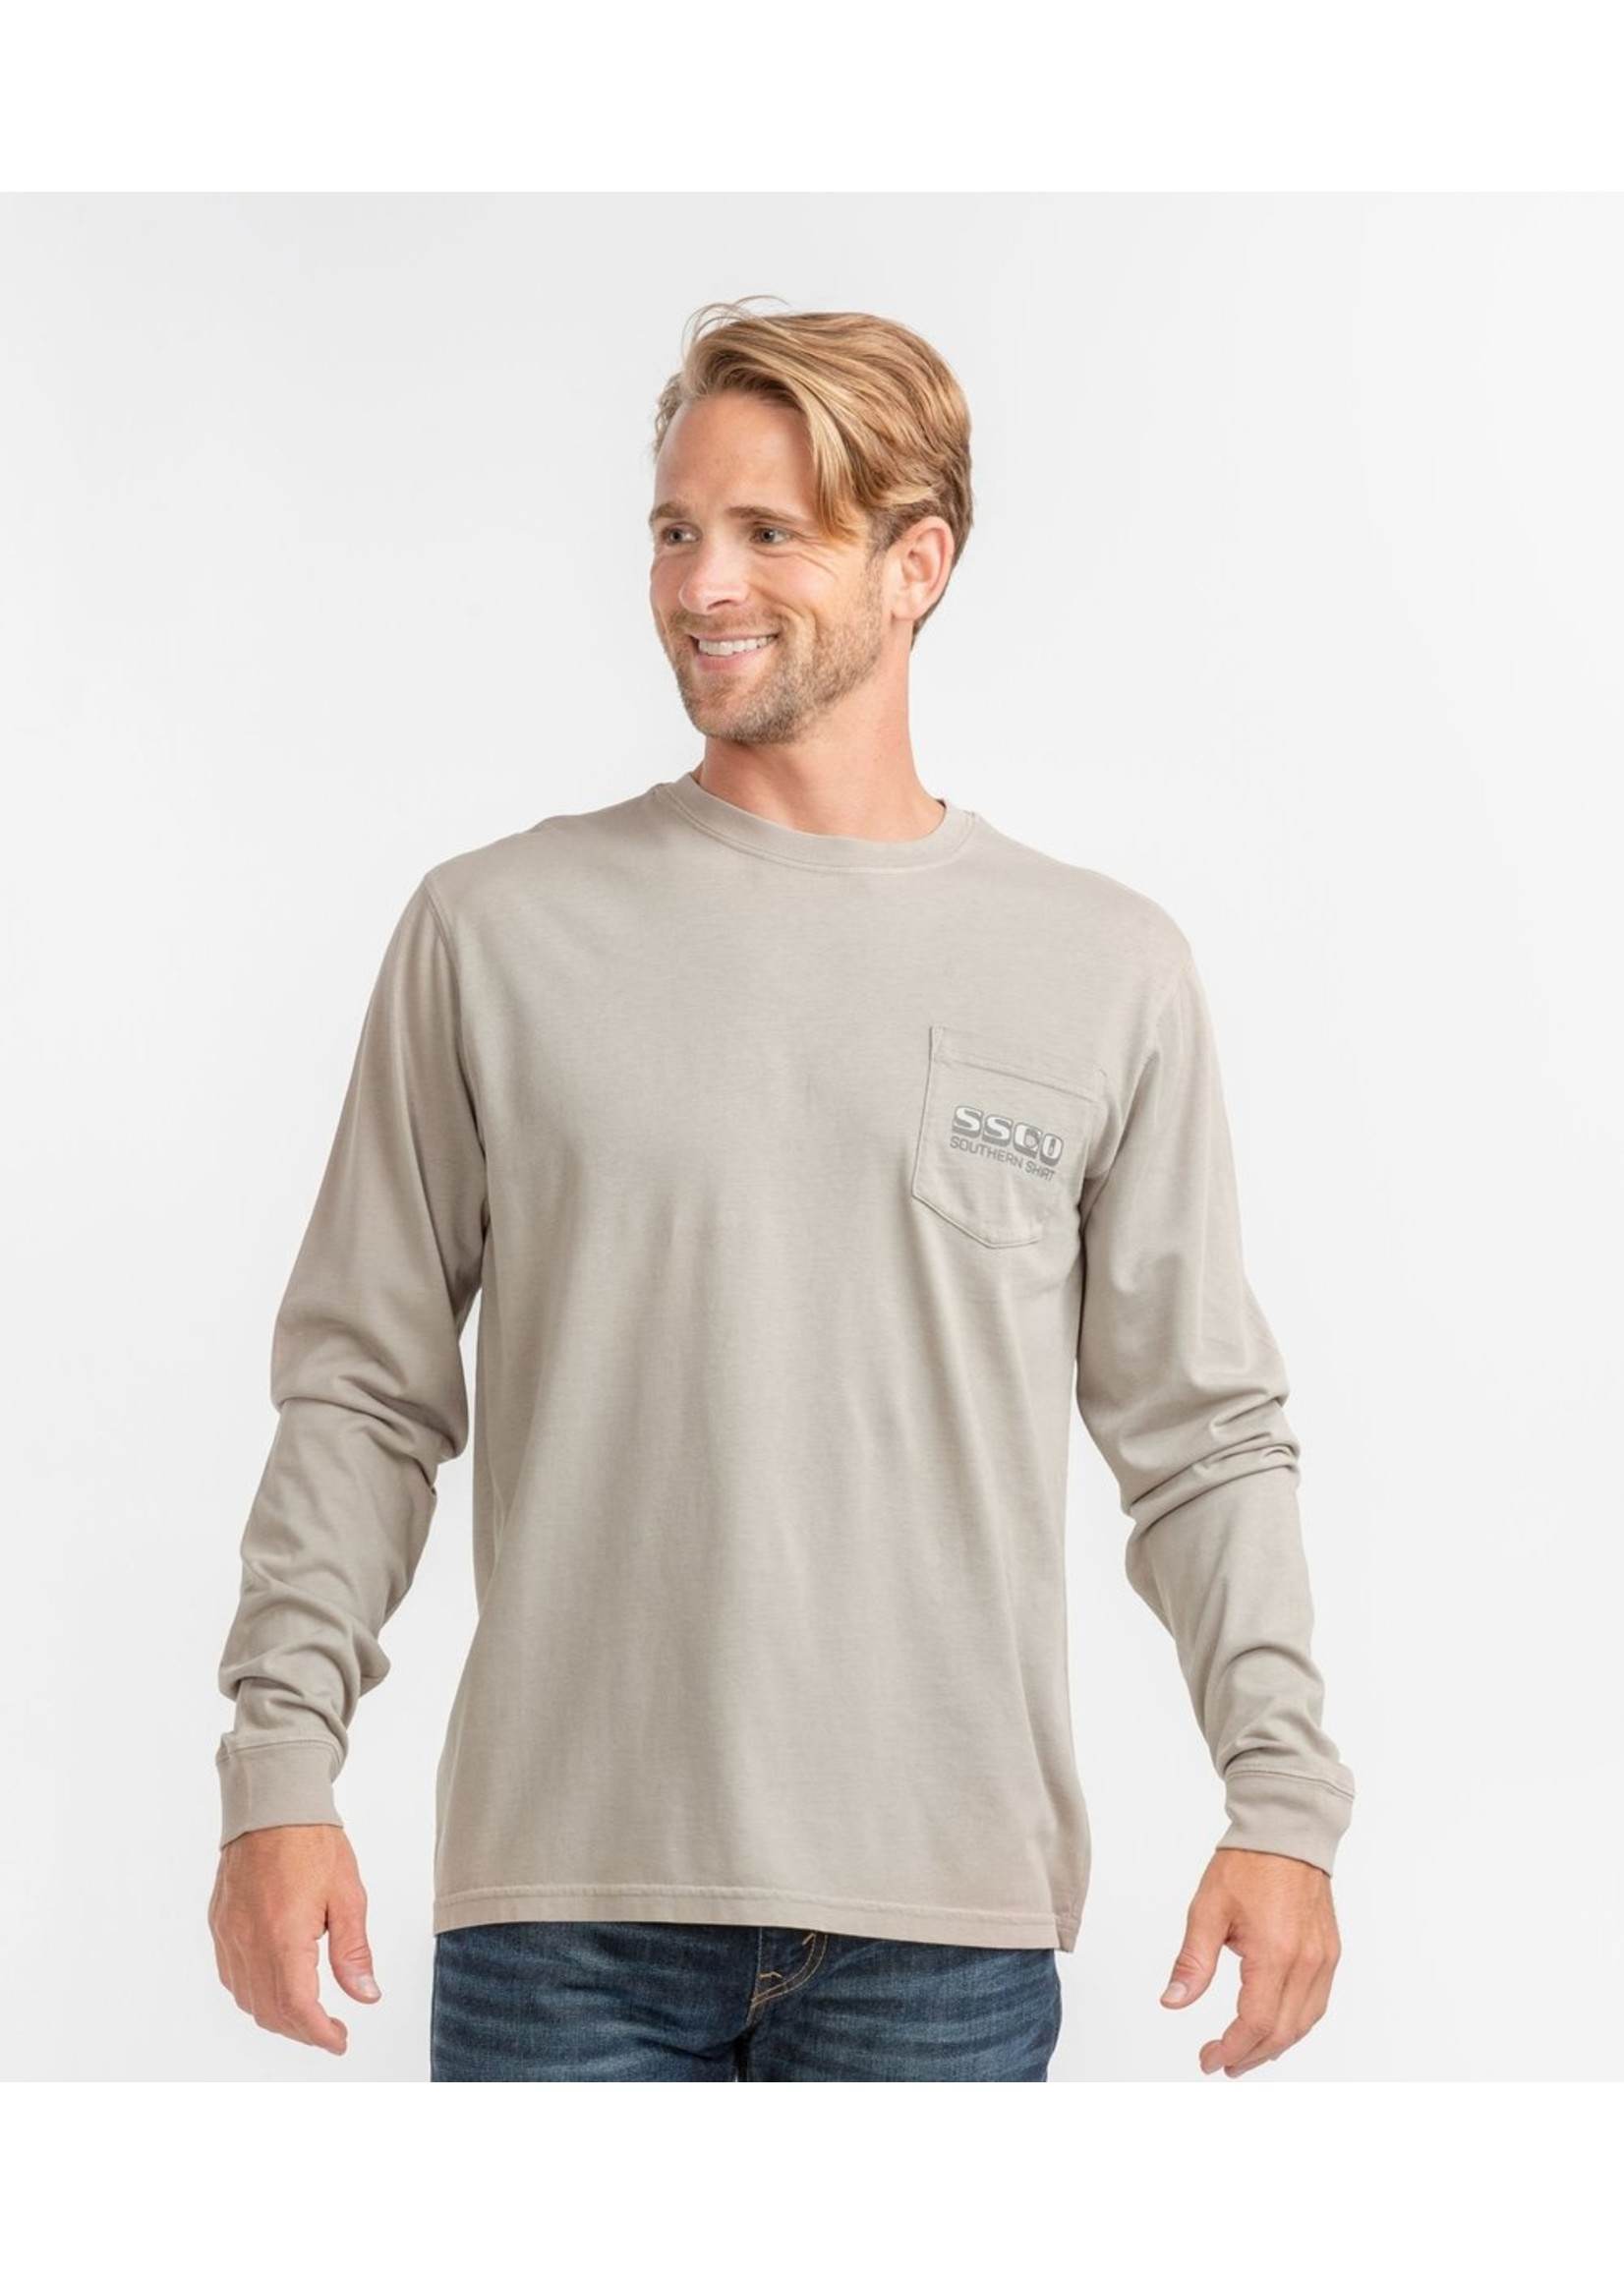 Southern Shirt Waterfowl Stamp Tee LS